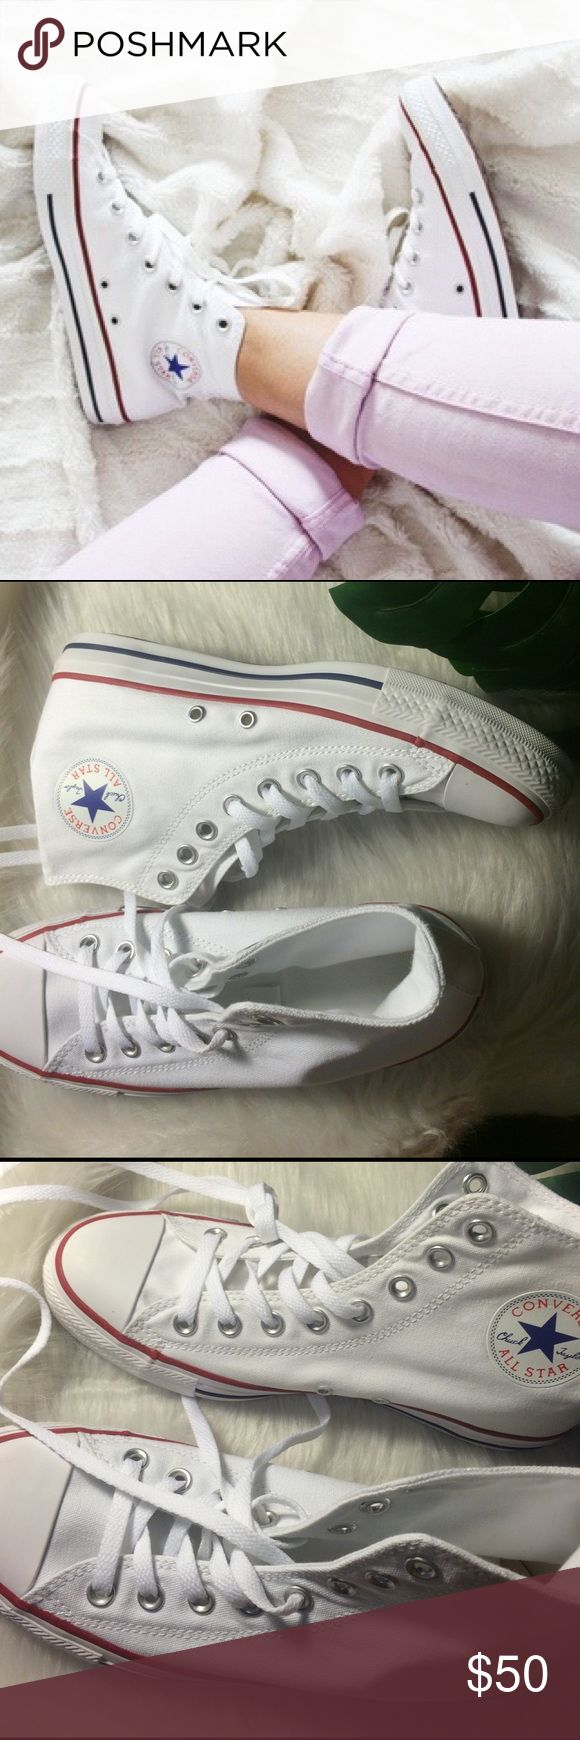 📍1 HOUR SALE📍CONVERSE CHUCK TAYLORS WHITE SHOES No box. Converse Shoes Sneakers